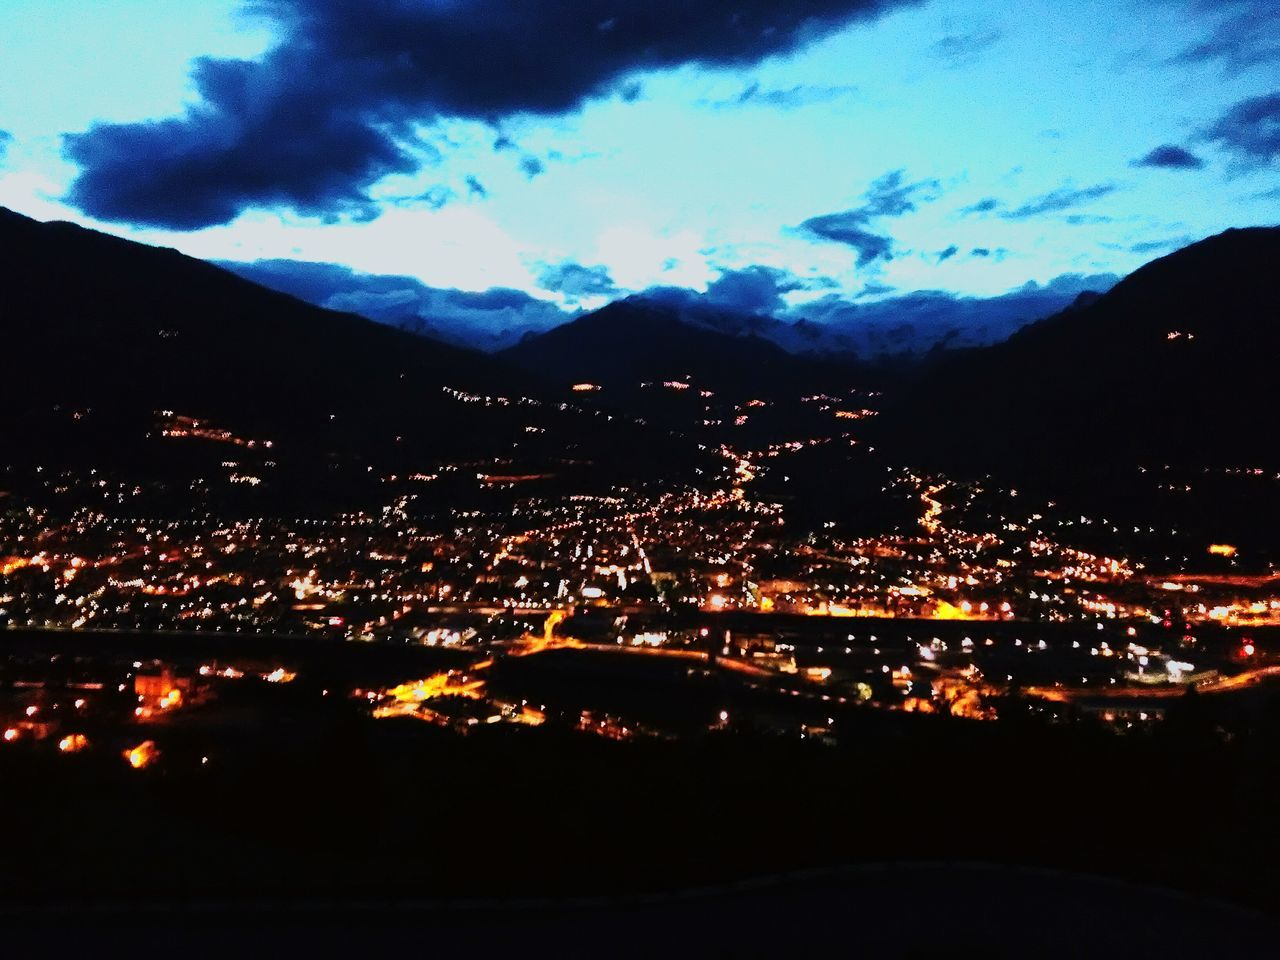 Night Aosta Aostavalley Pila Romantic Landscape Mountains Alps Discovering Places Home Sweet Home Charvensod